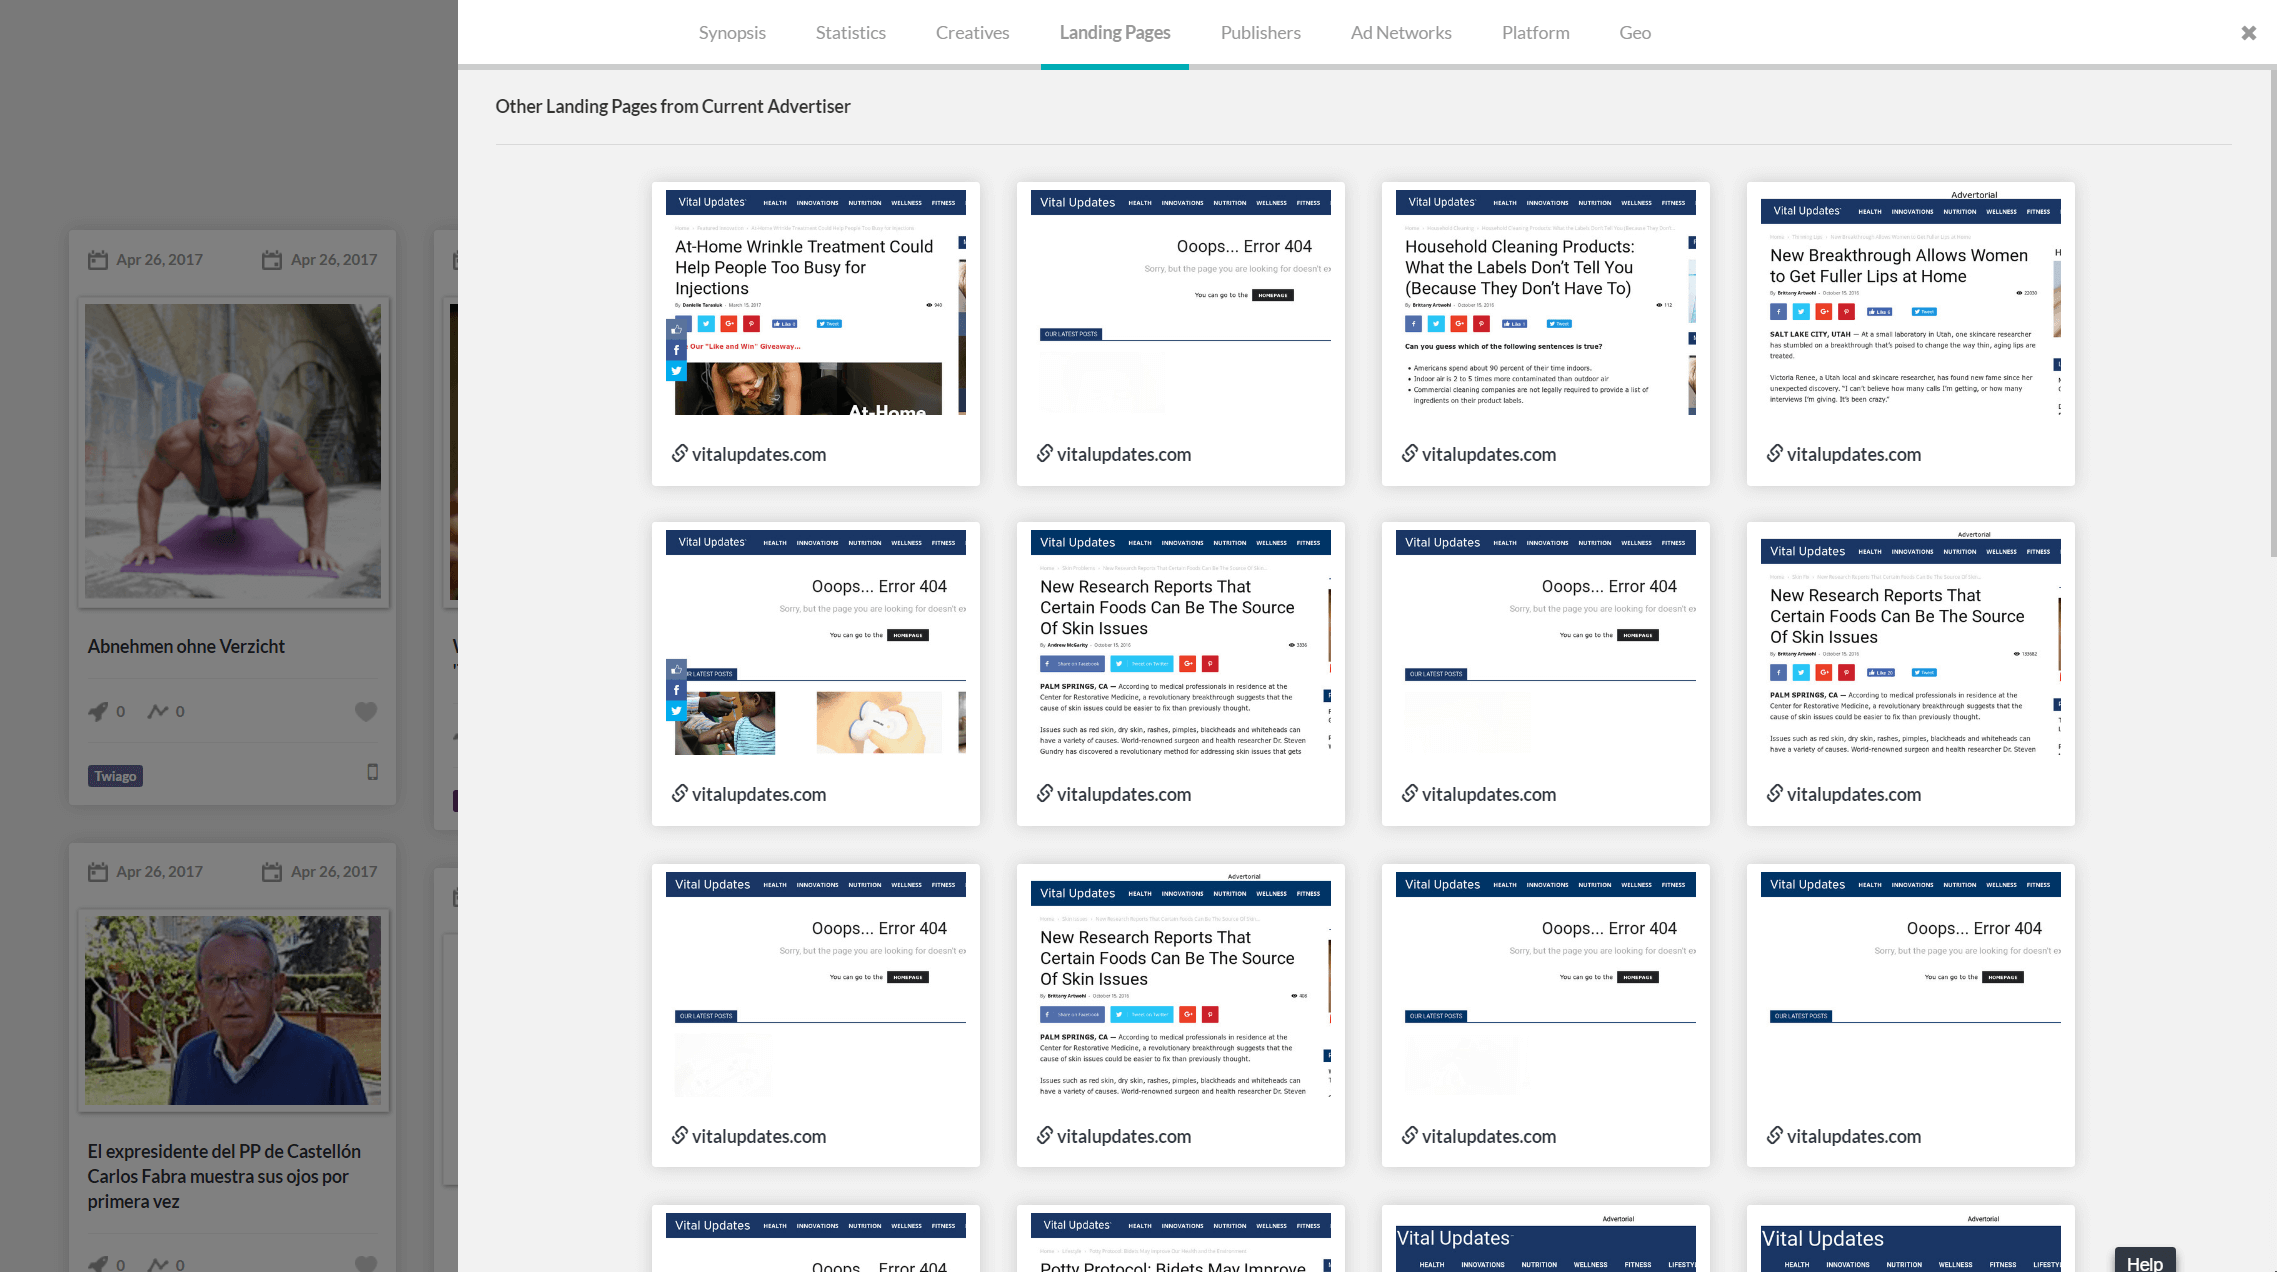 landing_pages_tab.png